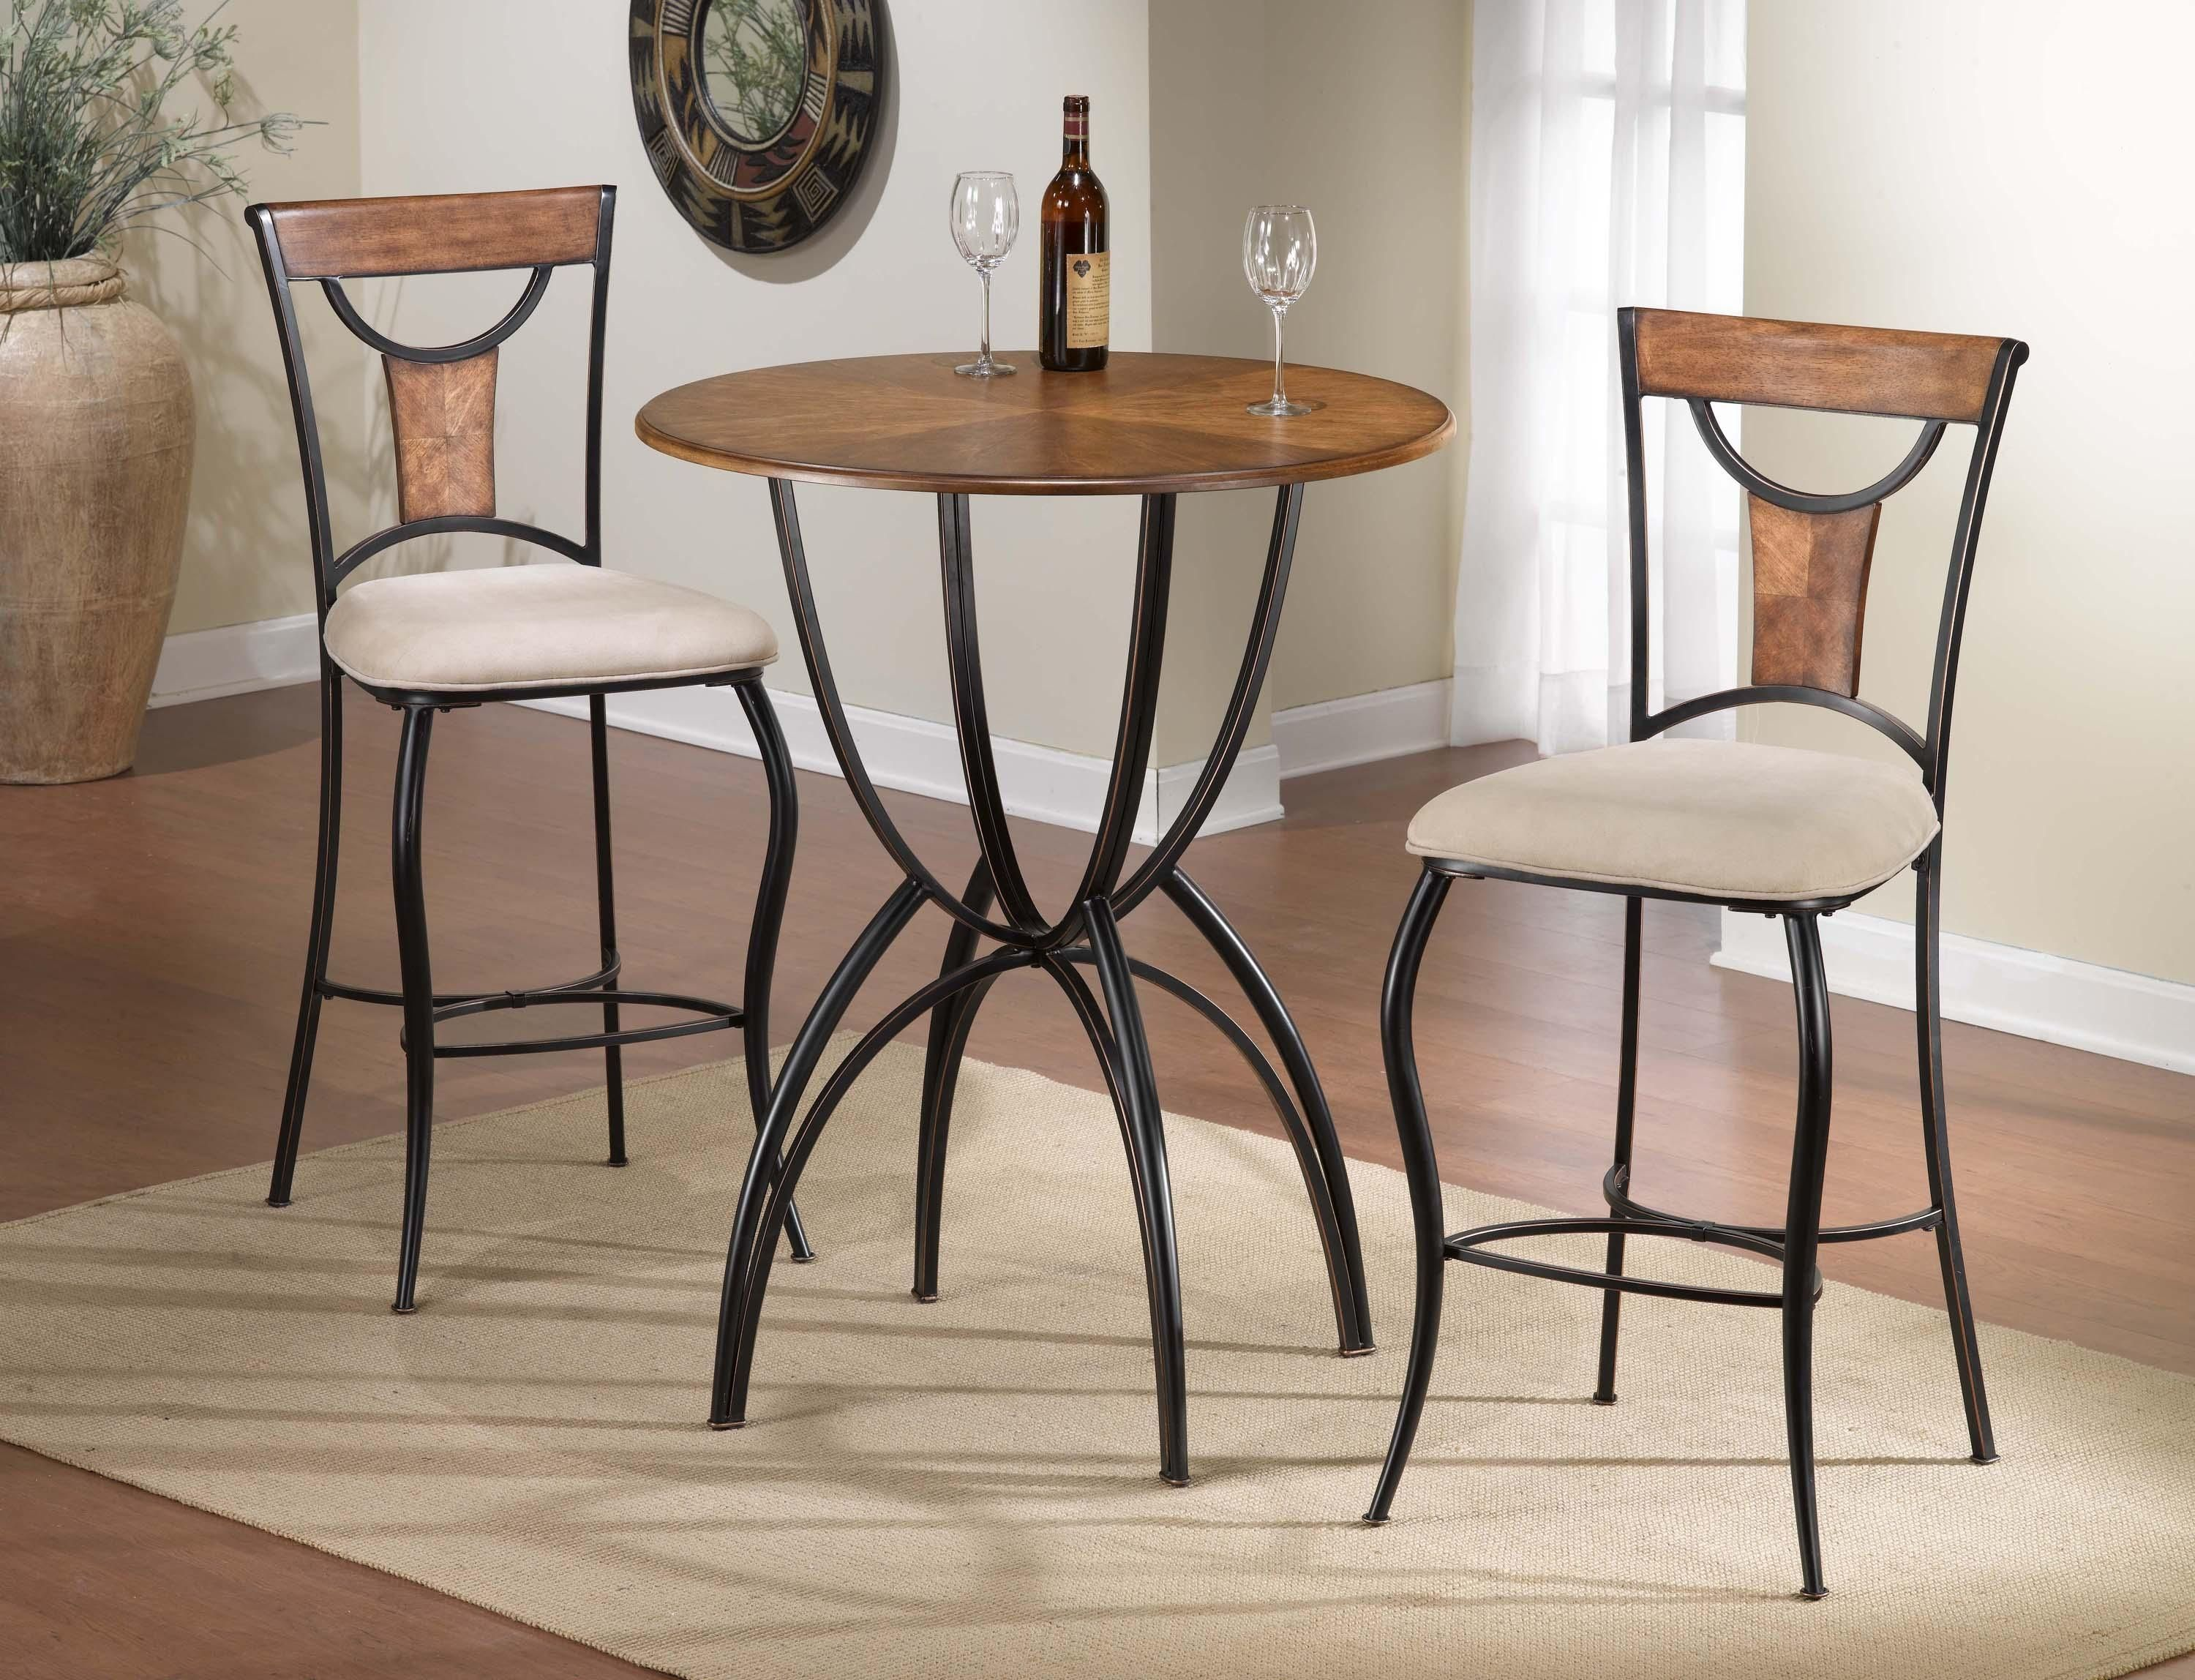 Kitchen Bistro Table And 4 Chairs